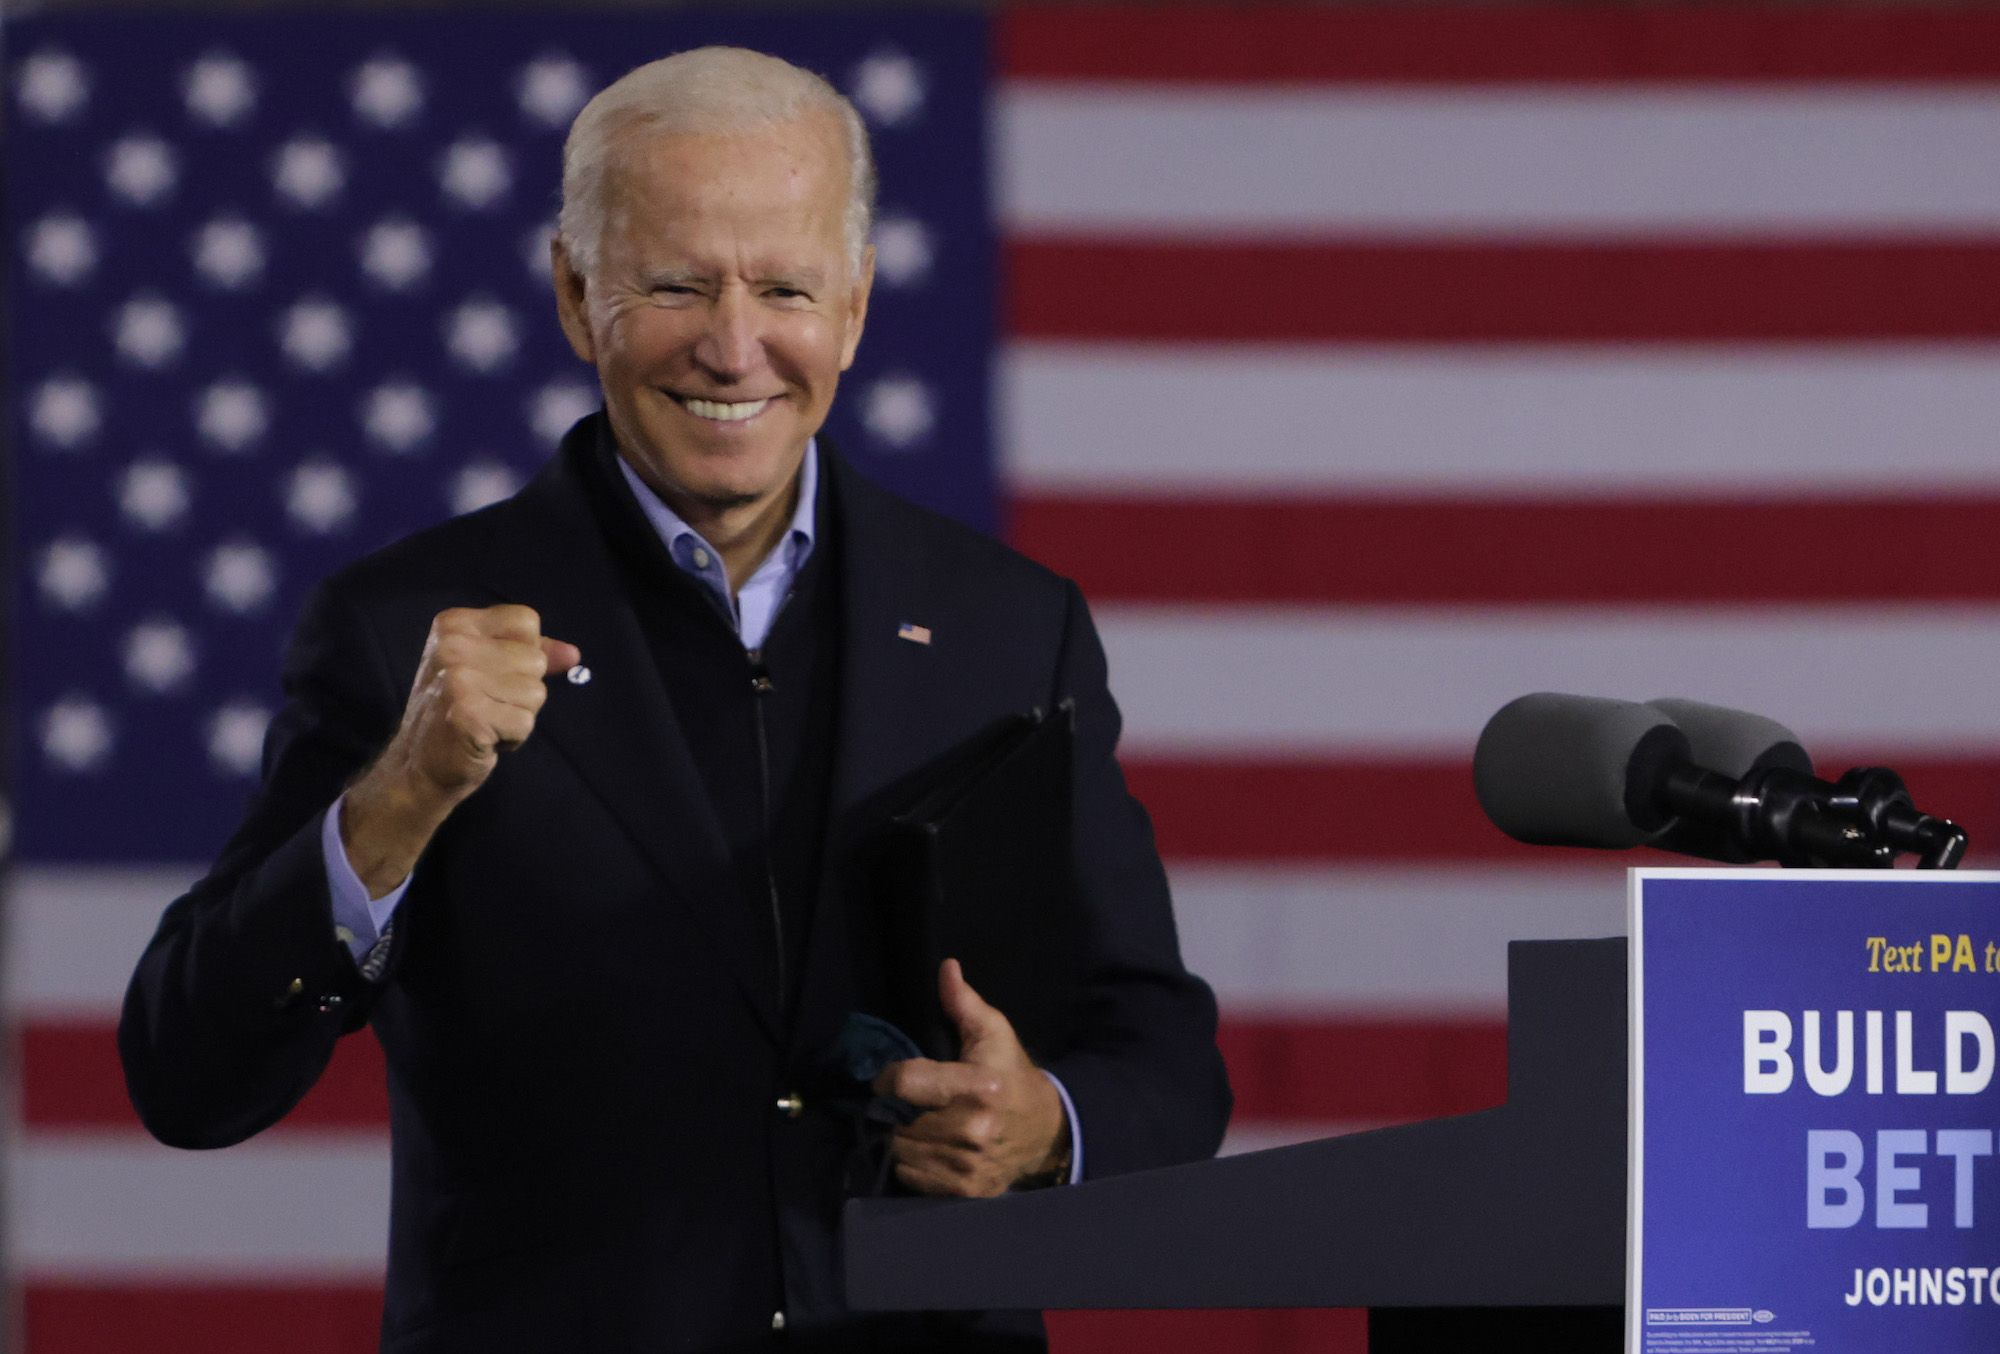 JOHNSTOWN, PENNSYLVANIA - SEPTEMBER 30:  Democratic U.S. presidential nominee Joe Biden gestures during a campaign stop outside Johnstown Train Station September 30, 2020 in Johnstown, Pennsylvania. Former Vice President Biden continues to campaign for the upcoming presidential election today on a day-long train tour with stops in Ohio and Pennsylvania.  (Photo by Alex Wong/Getty Images)